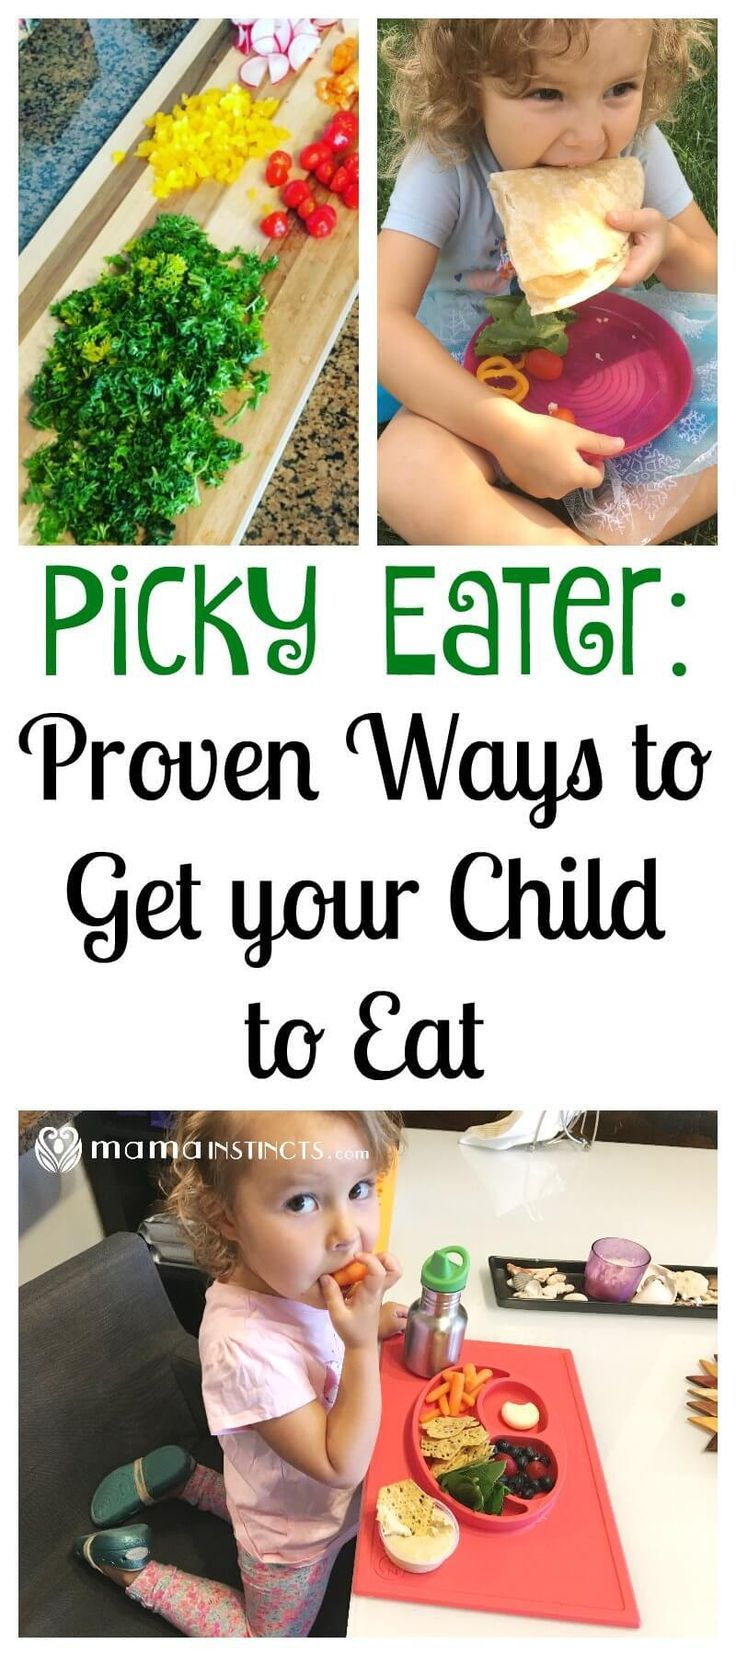 Picky eater proven ways to get your child to eat picky eaters do you have a picky eater is it normal or should you be worried healthy mealseat ccuart Gallery